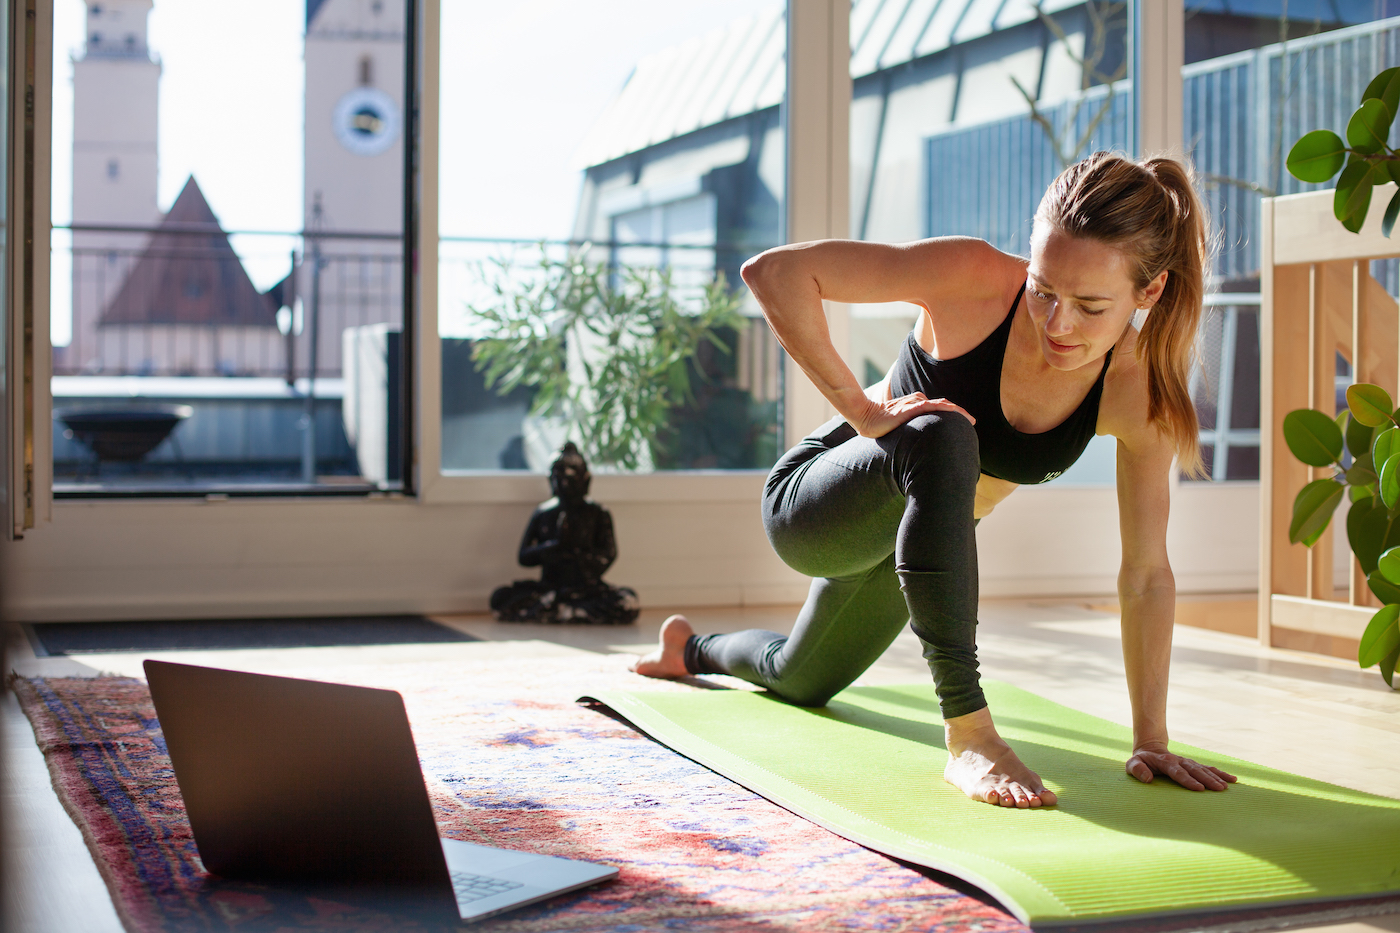 Workout Apps to Help You Keep Motivated